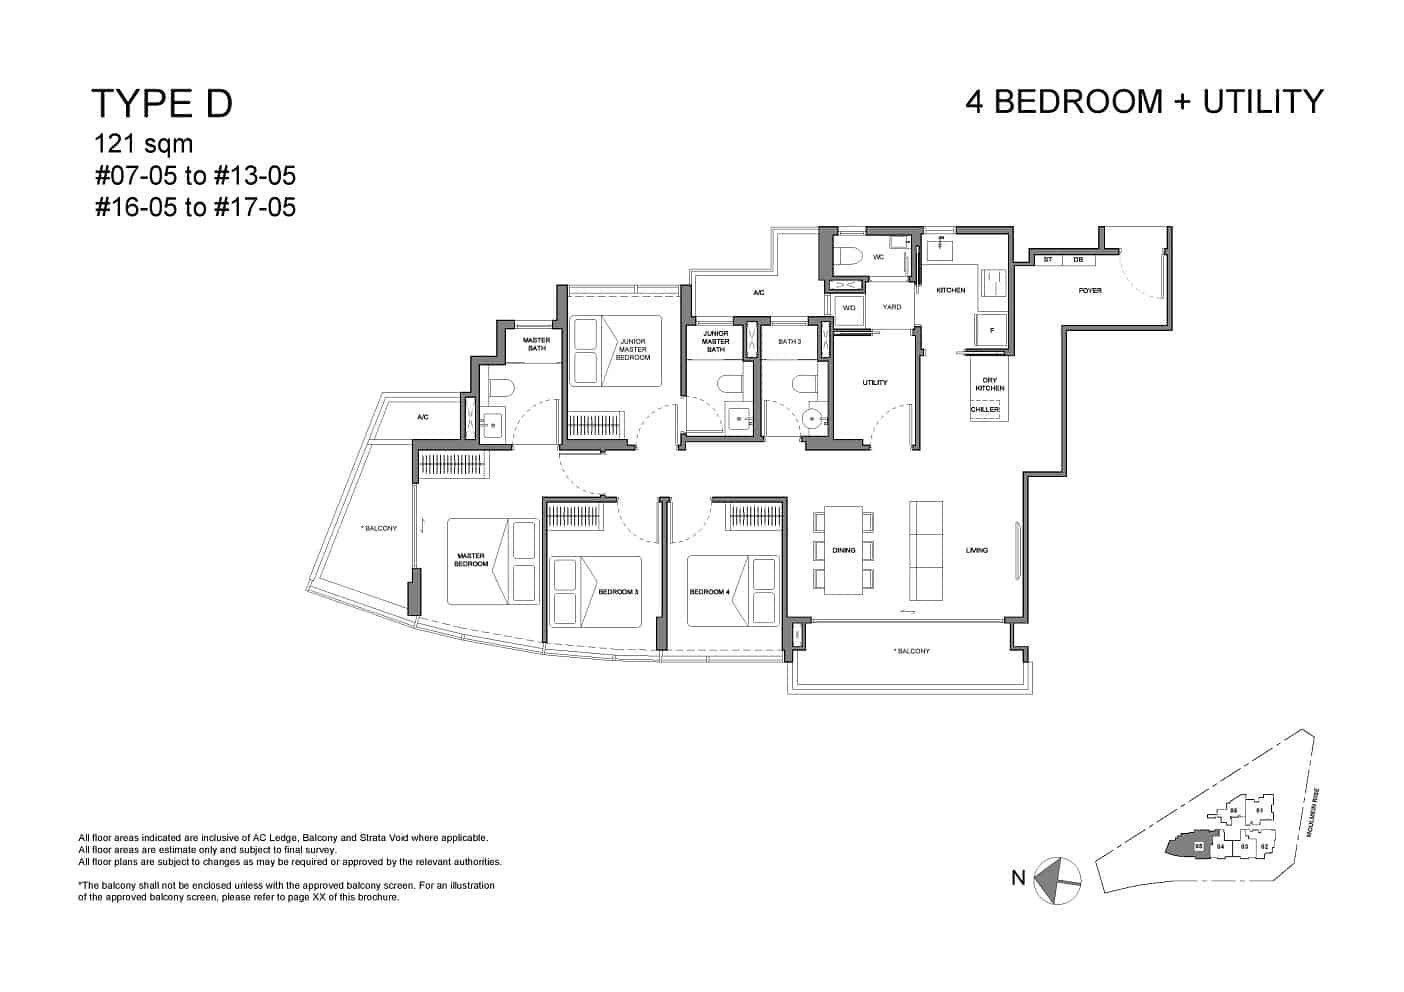 Neu at Novena 4-bedroom utility Type D